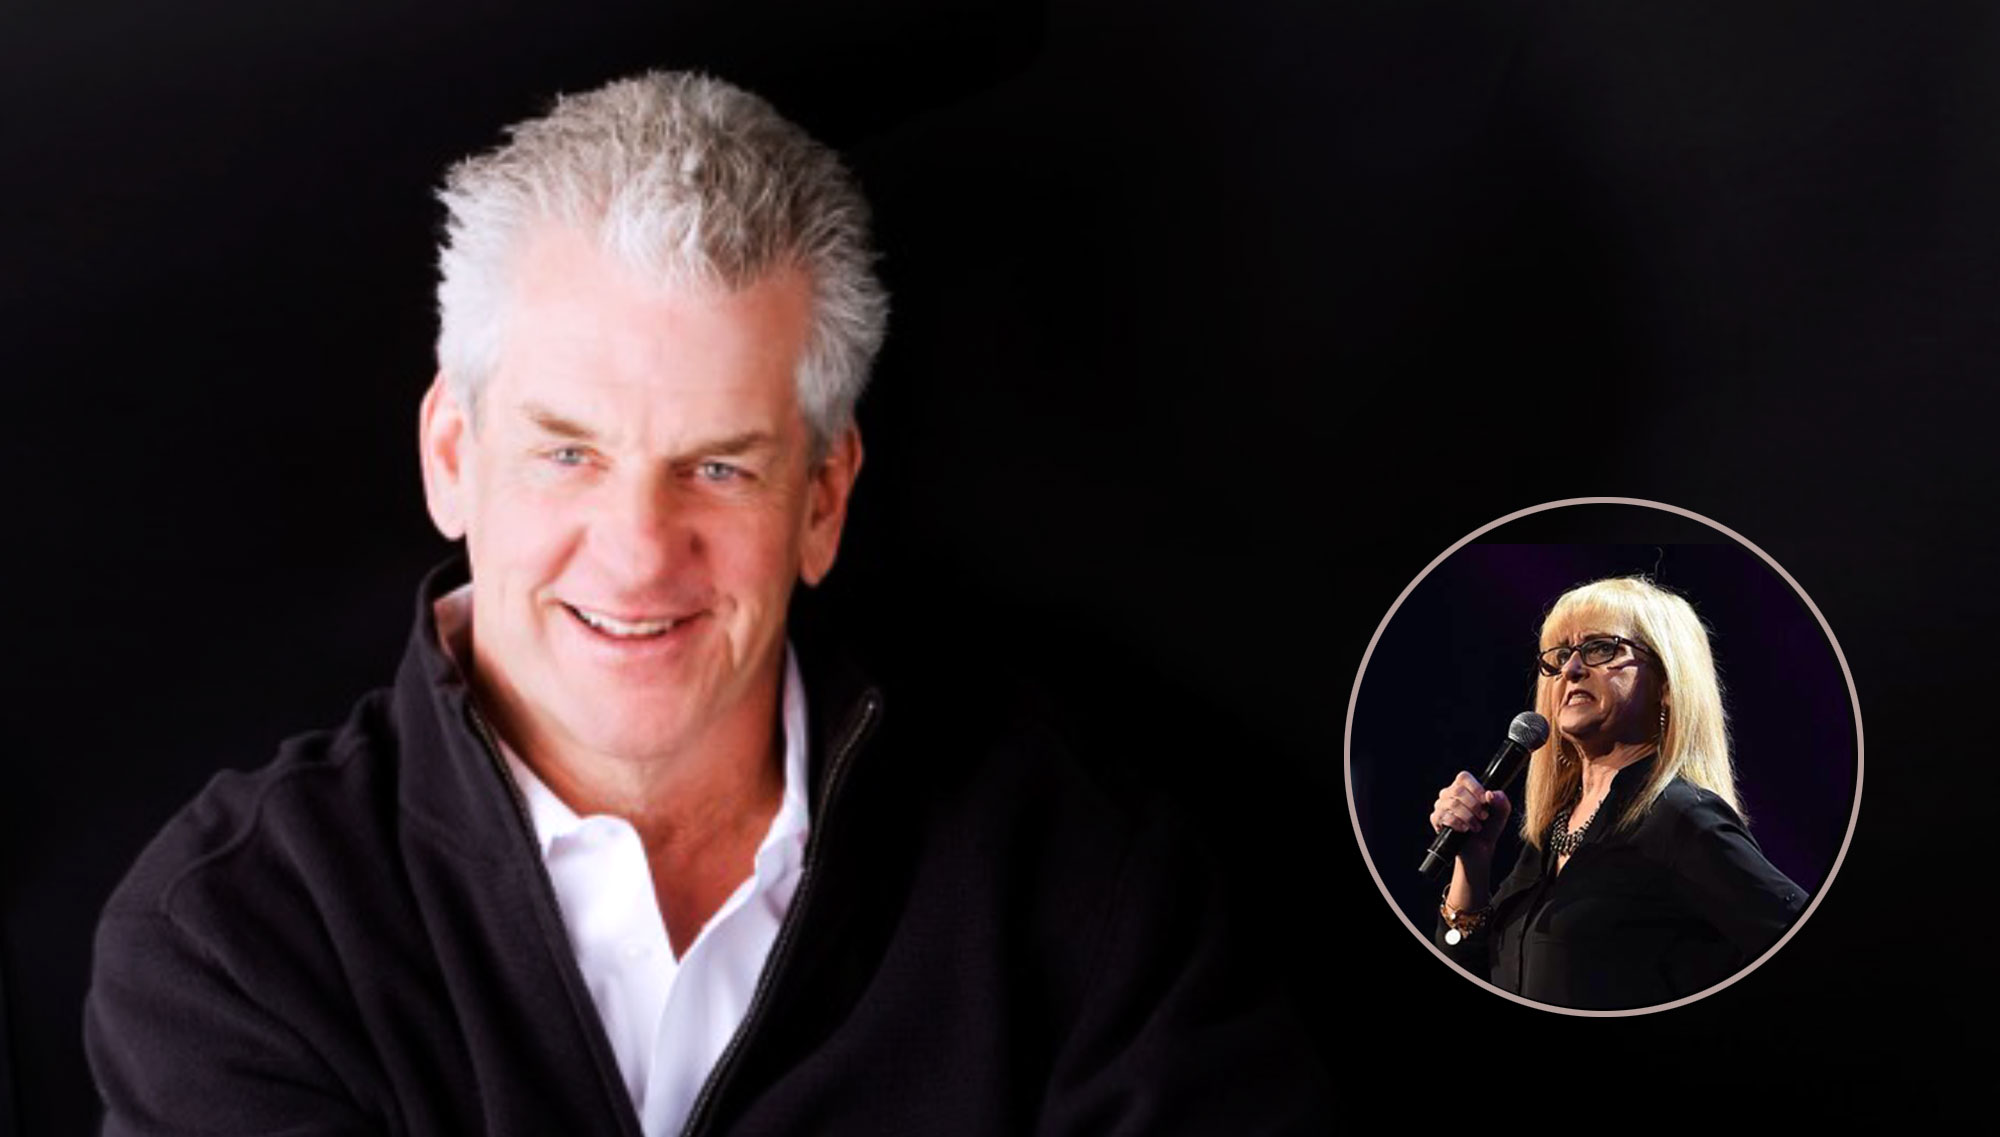 AN EVENING OF LAUGHTER WITH LENNY STARRING LENNY CLARKE  <H4>With Special Guest Christine Hurley  </h4><h5>November 4  </h5>